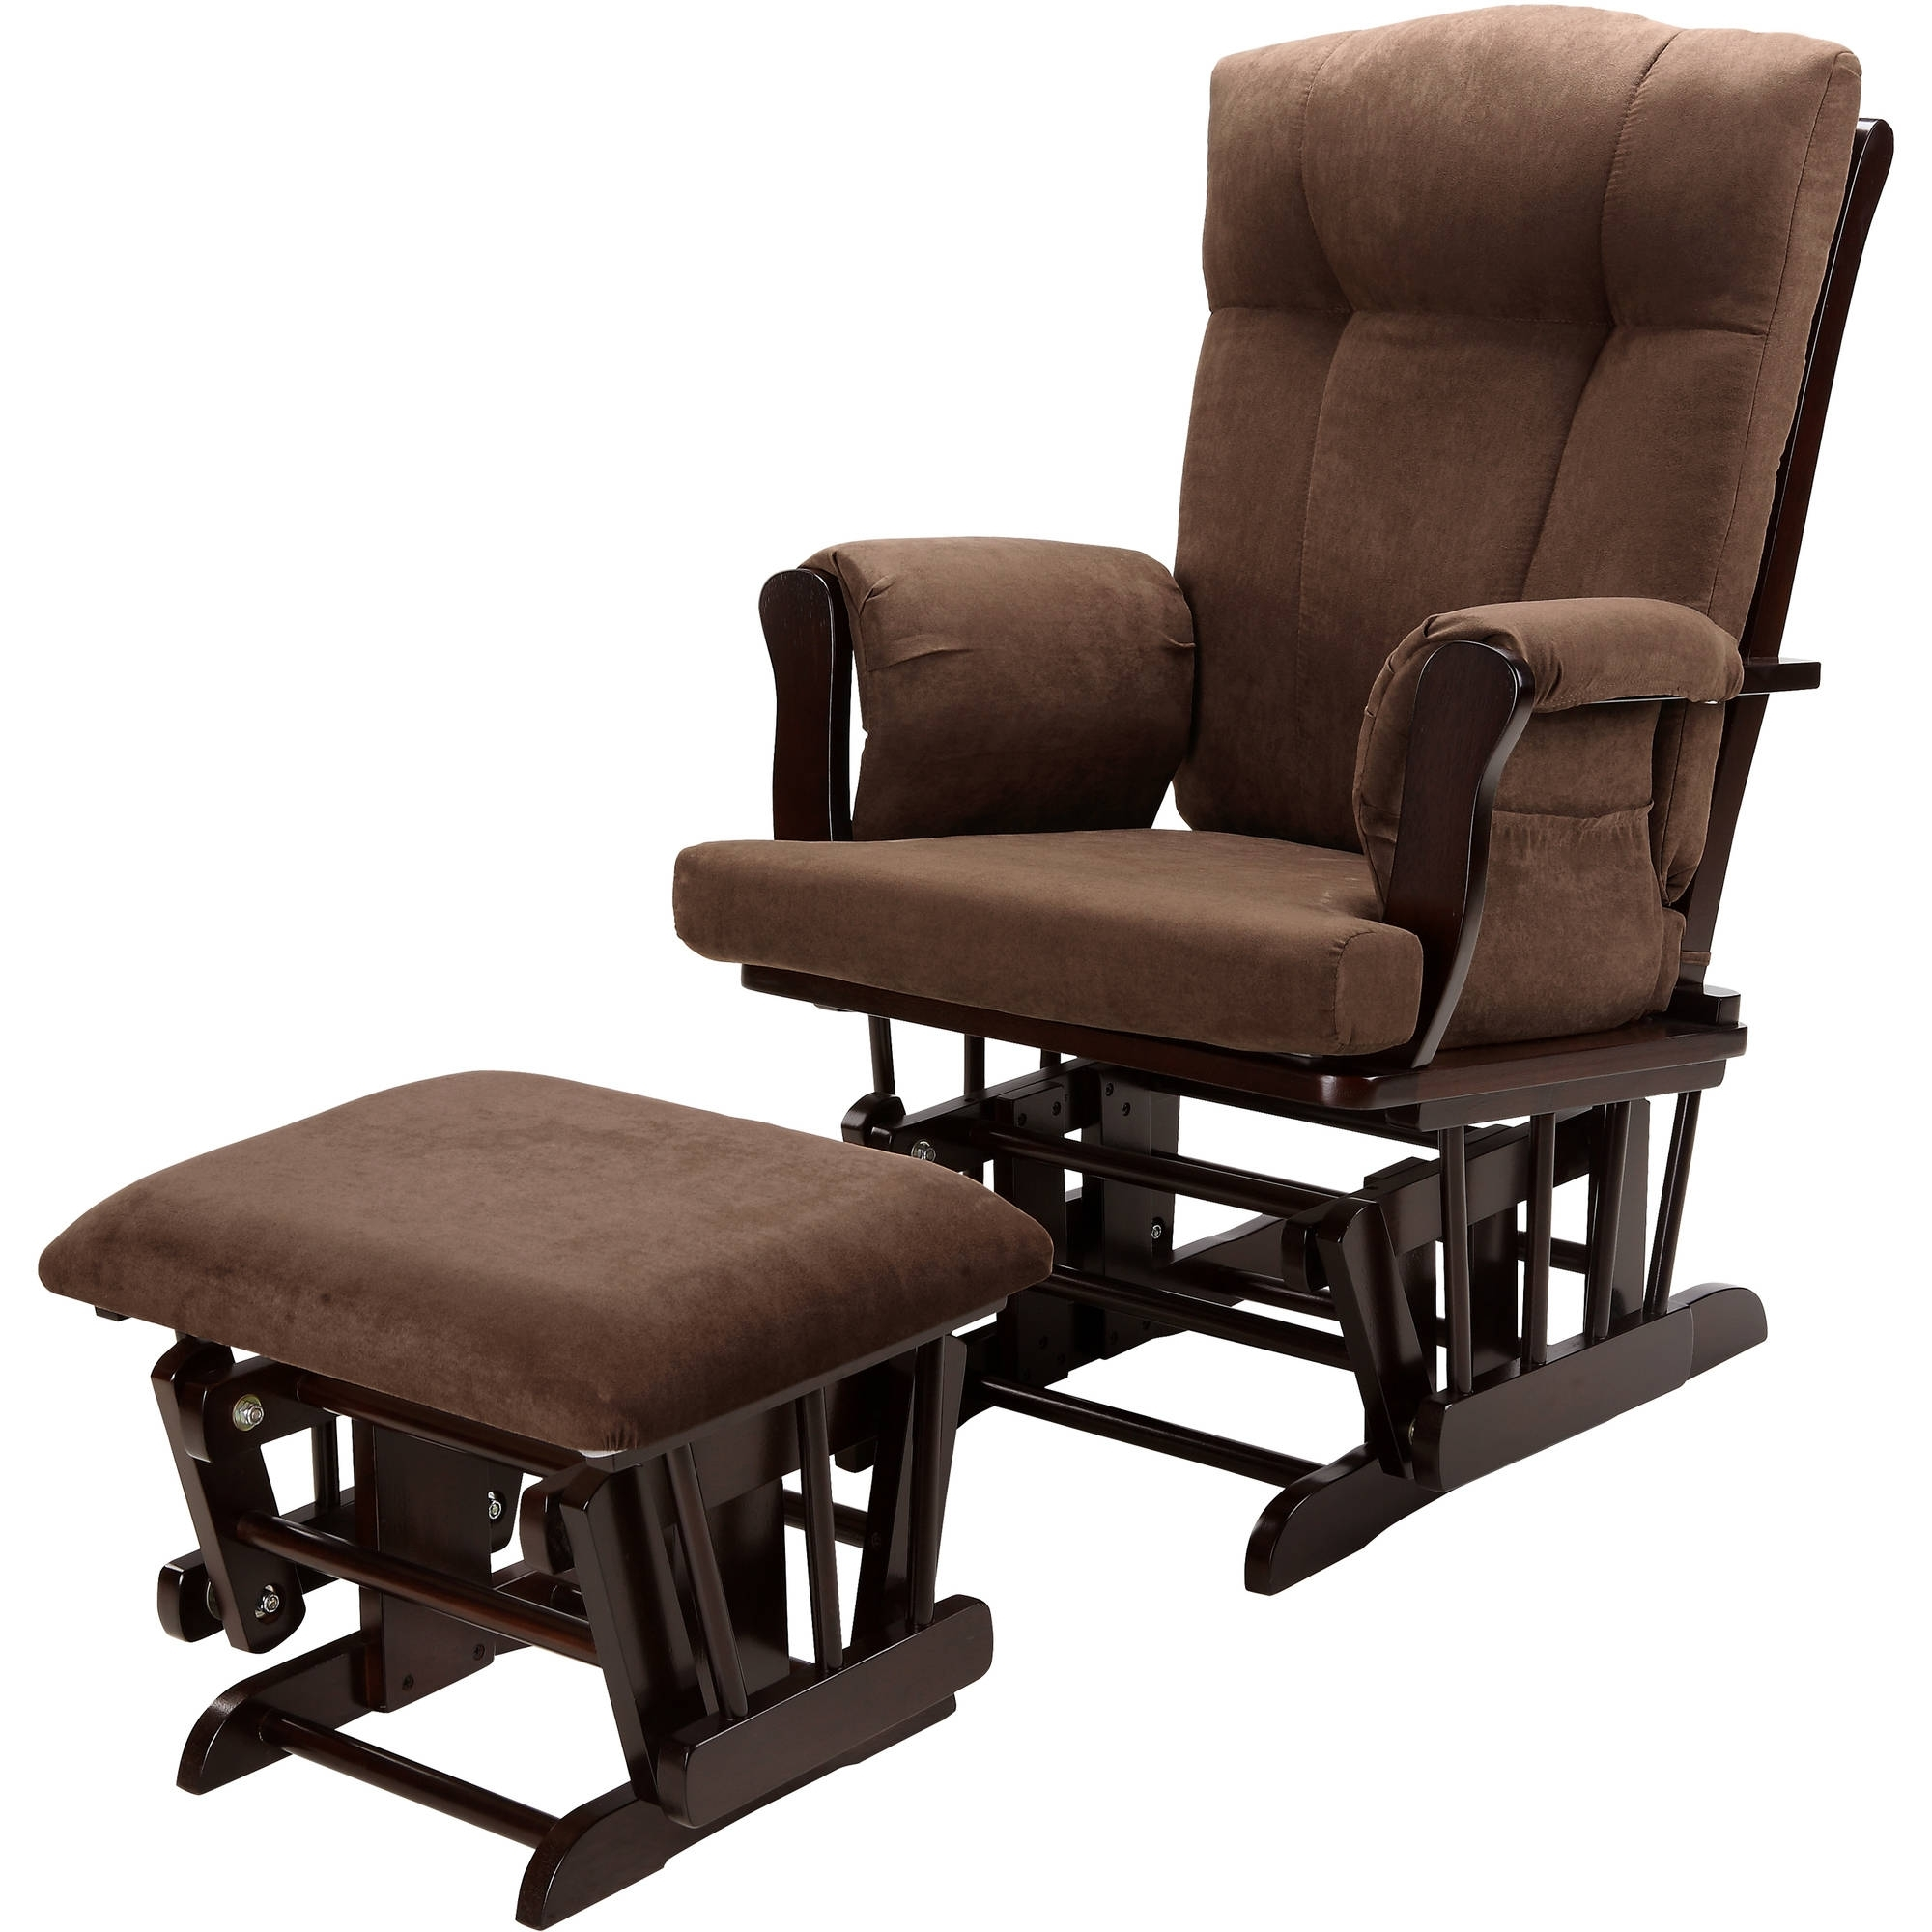 Rocking Chairs With Ottoman In Widely Used Baby Relax Glider Rocker And Ottoman Espresso With Chocolate (View 8 of 20)